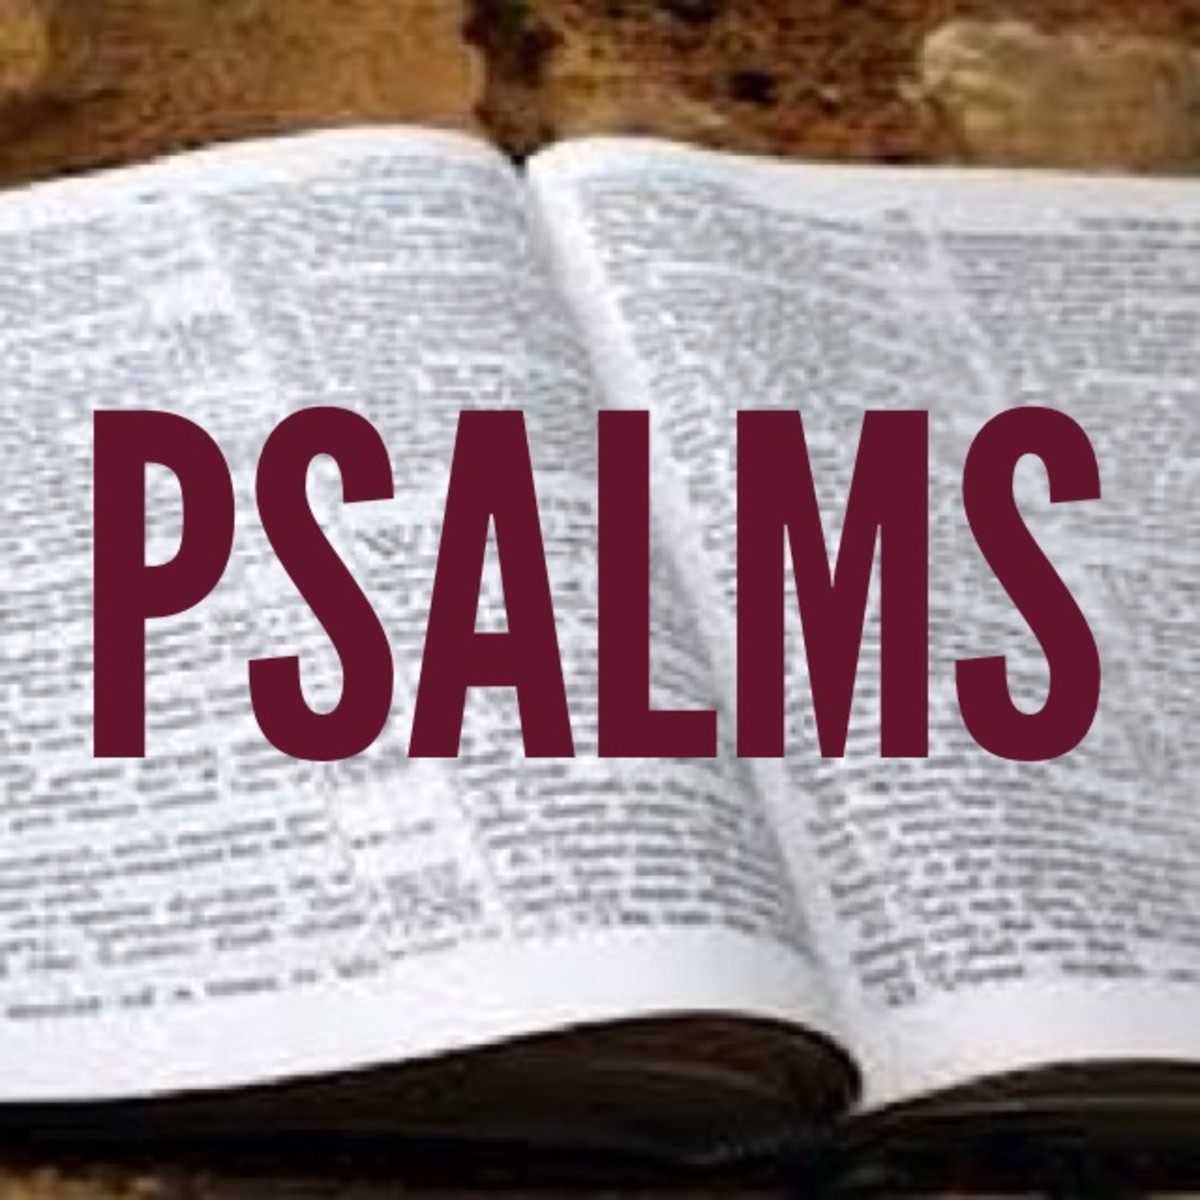 Psalms vs. Proverbs